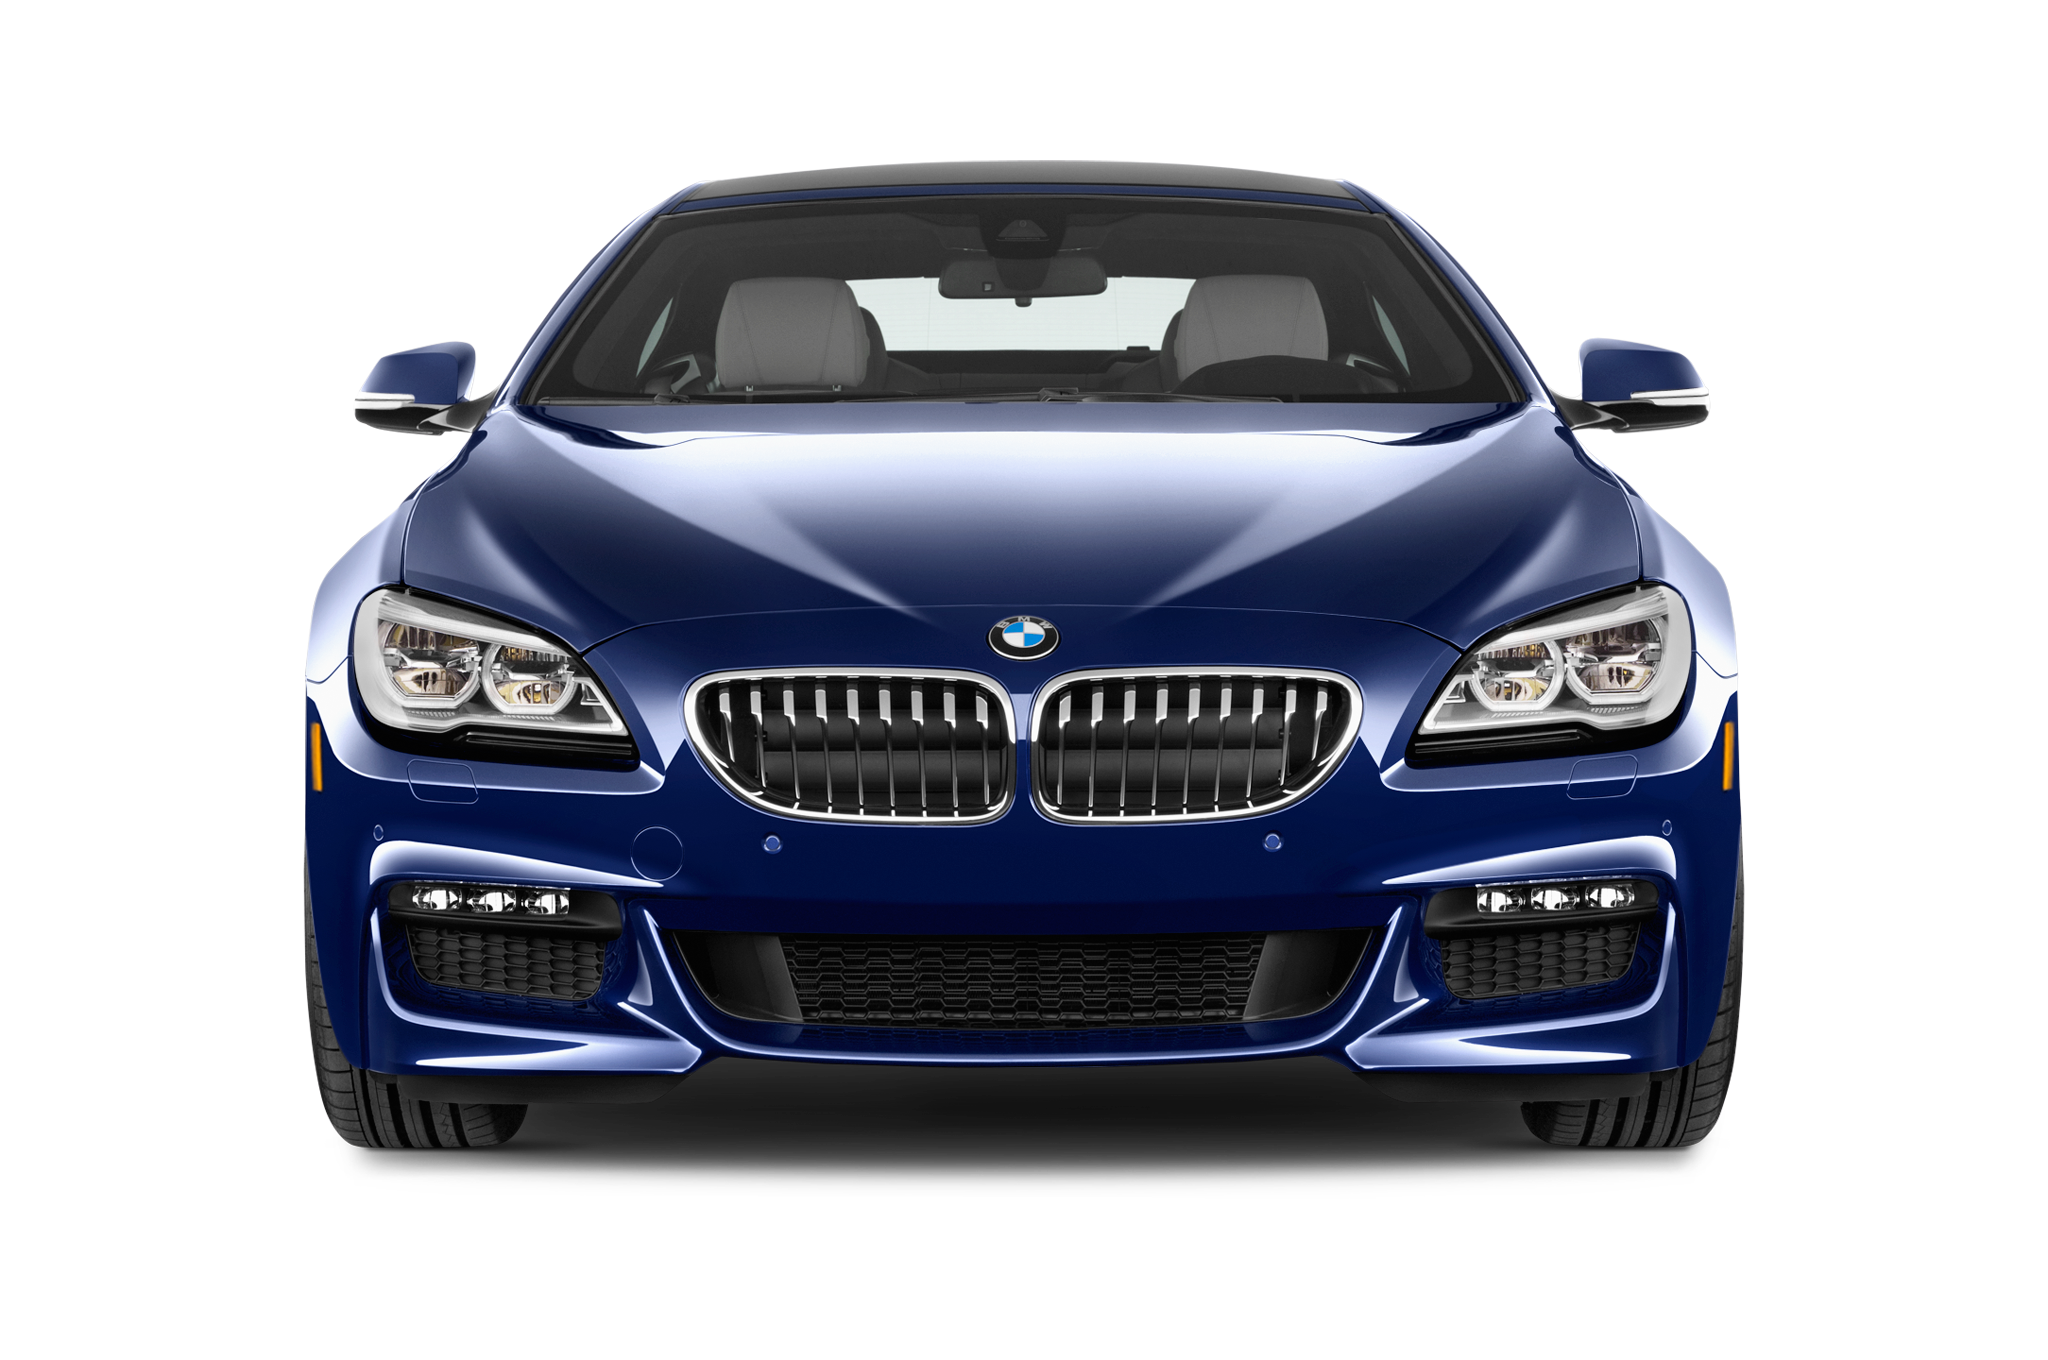 Bmw front png. Transparent images group series